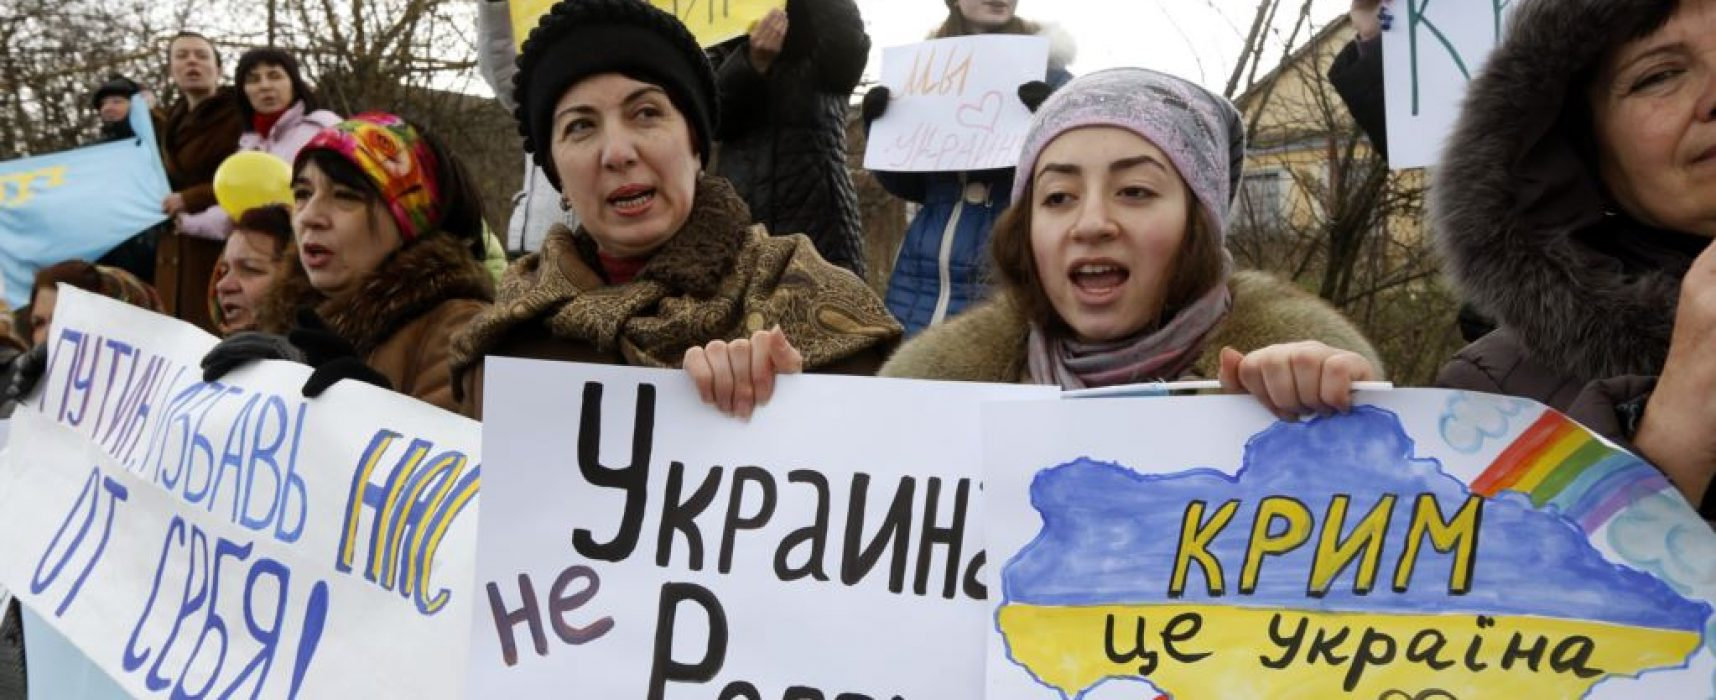 Moscow: Crimea is Russian, UN: It is occupied territory